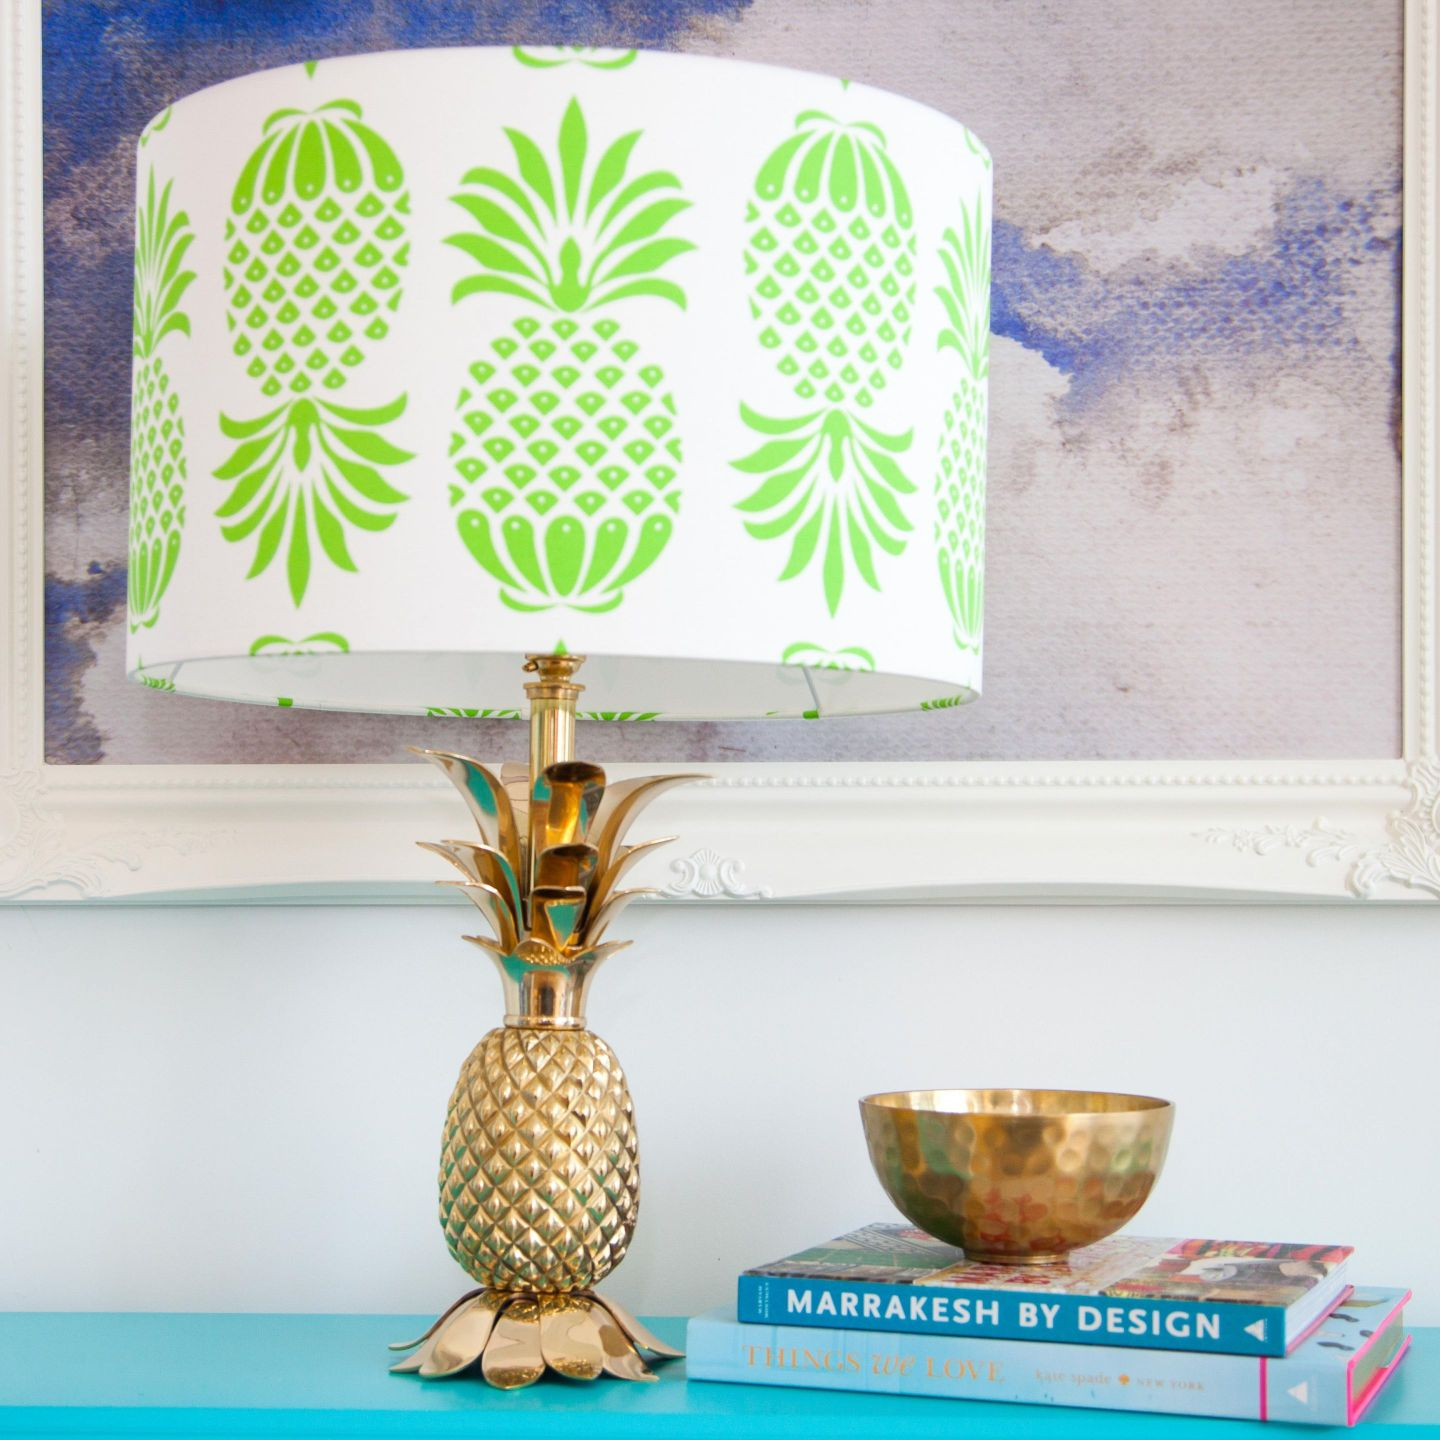 Penelope-Hope-Pina-Colada-Green-Drum-Lampshade-Large-1634096-1-1440x1440 Pineapple Decor: Tips for Decorating Your Home with Southern Hospitality